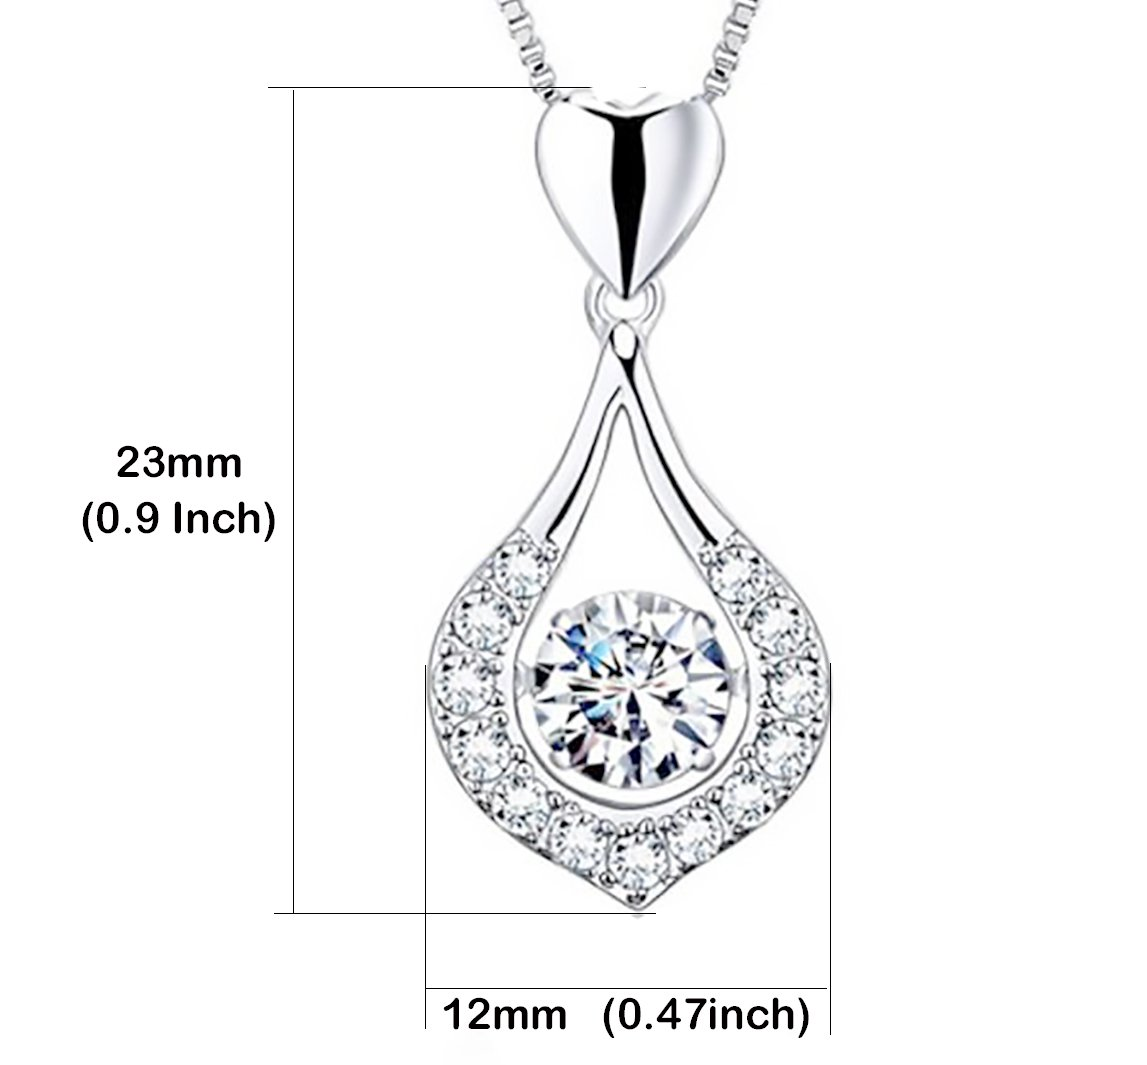 Stazzle New Dancing Love Necklace Original Silver beautiful Necklace by Pendant Necklace in a Jewelry gift box (Dancing Love)